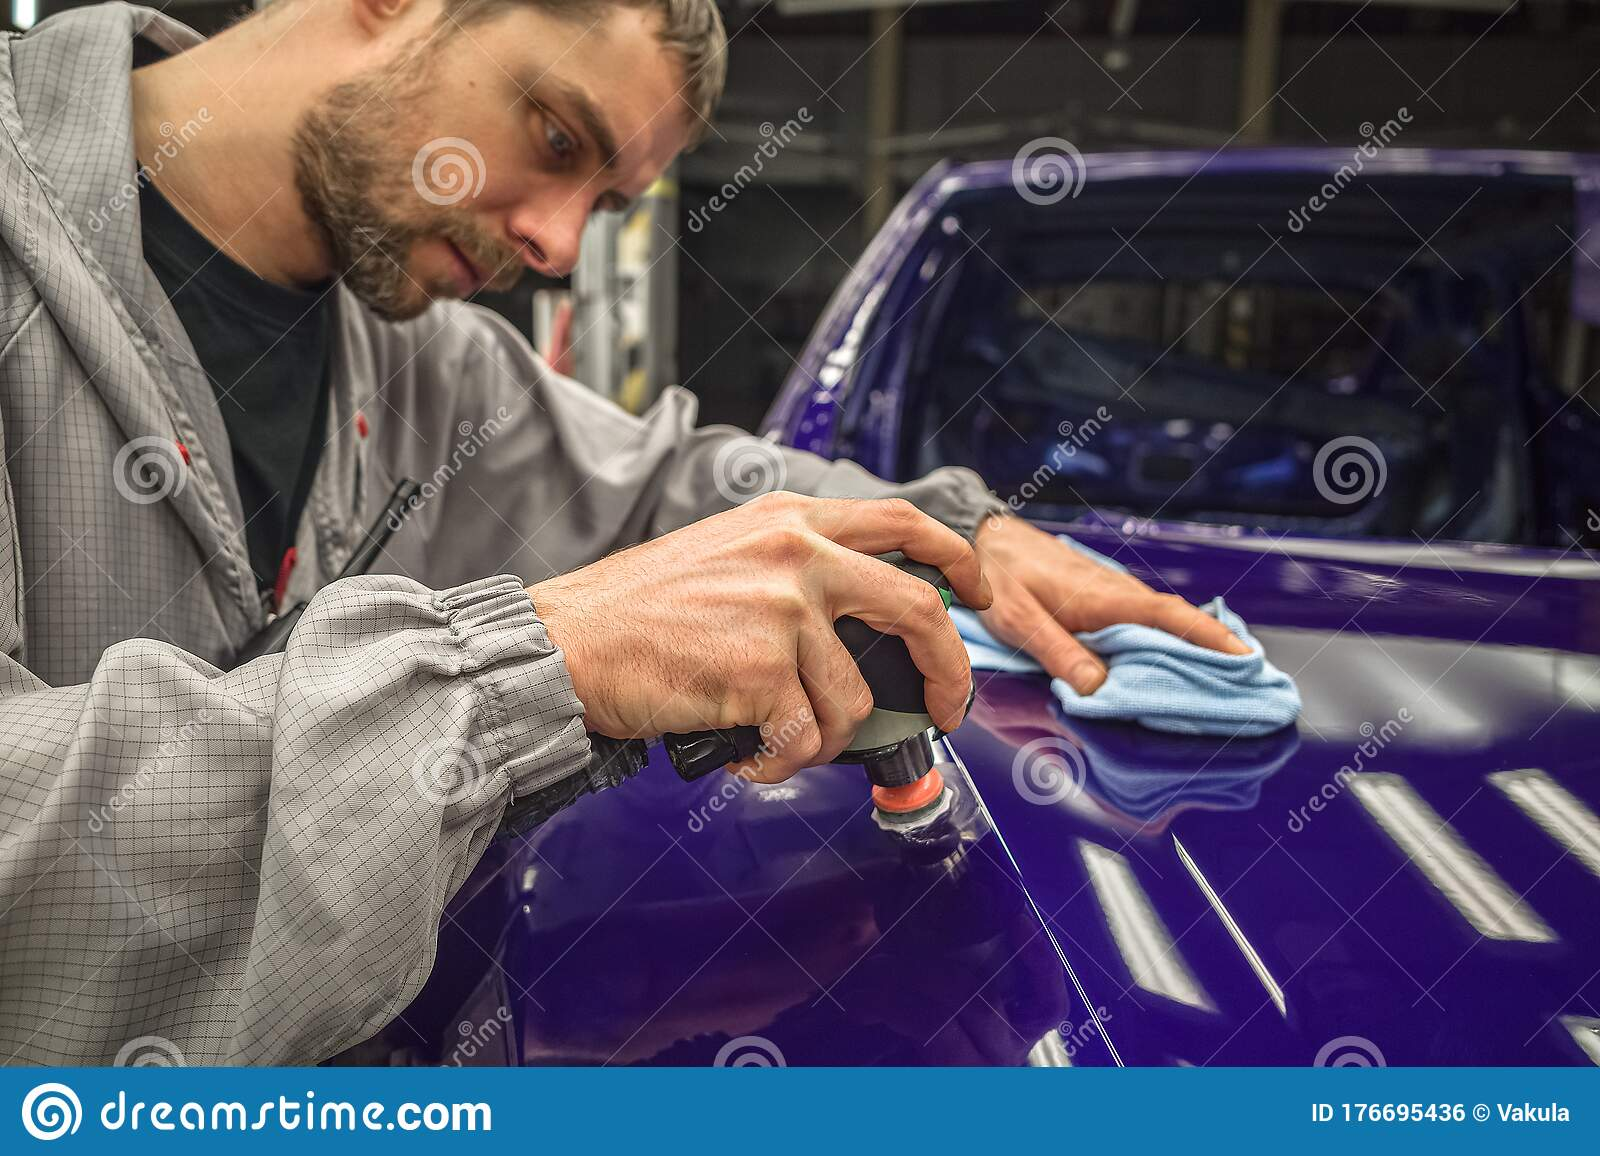 A Worker In The Painting Shop Of A Car Body Sanding Painted Items Stock Photo Image Of Color Painting 176695436